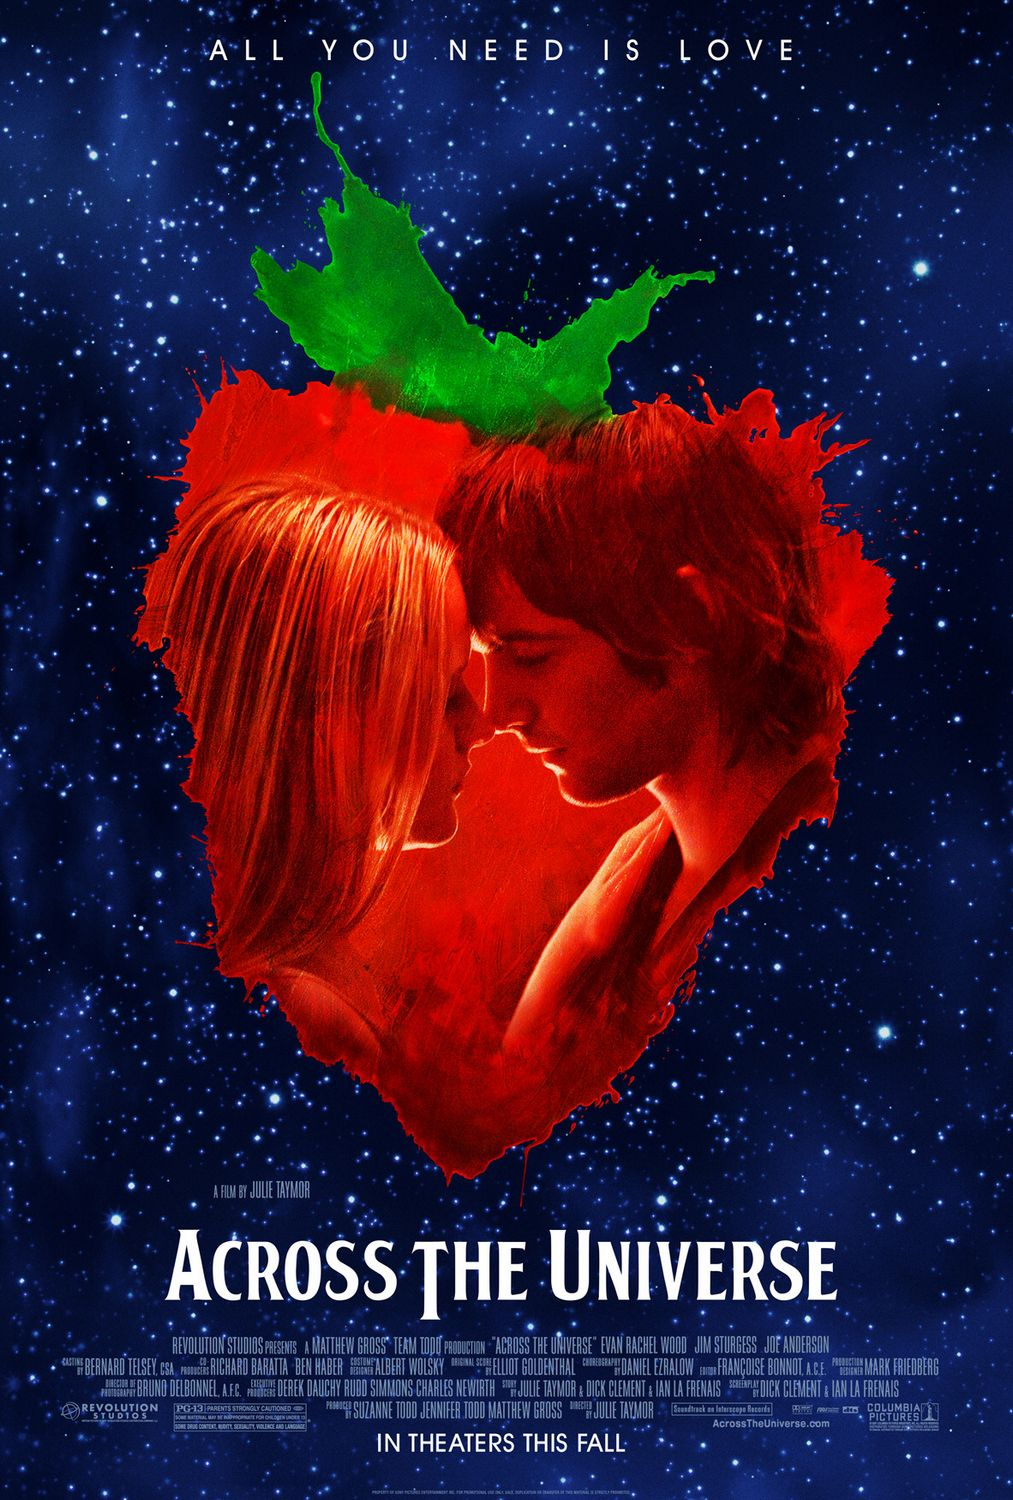 [PRESS PLAY] ACROSS THE UNIVERSE